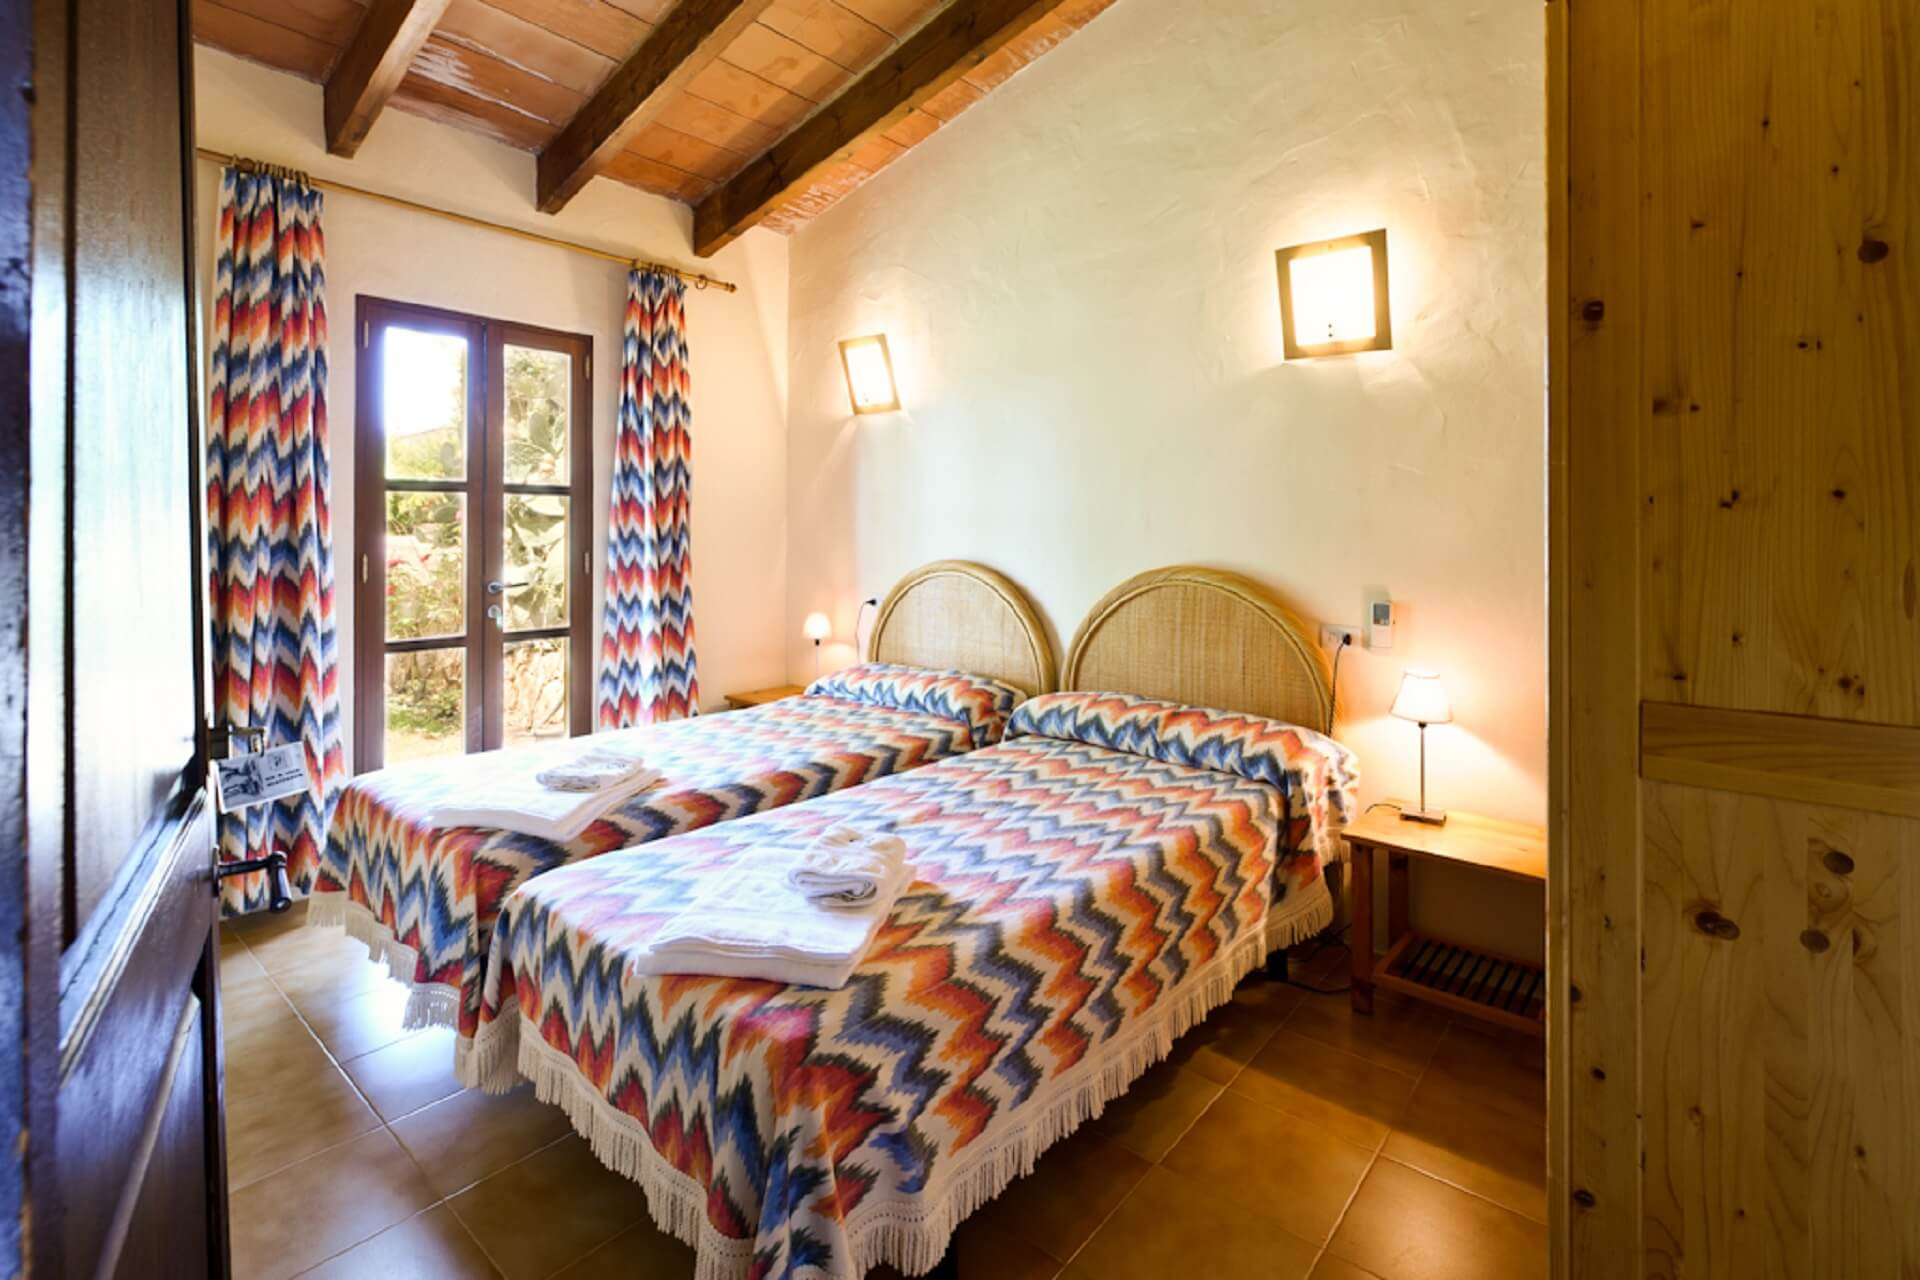 Finca Son Rito - Bedroom neighboring building